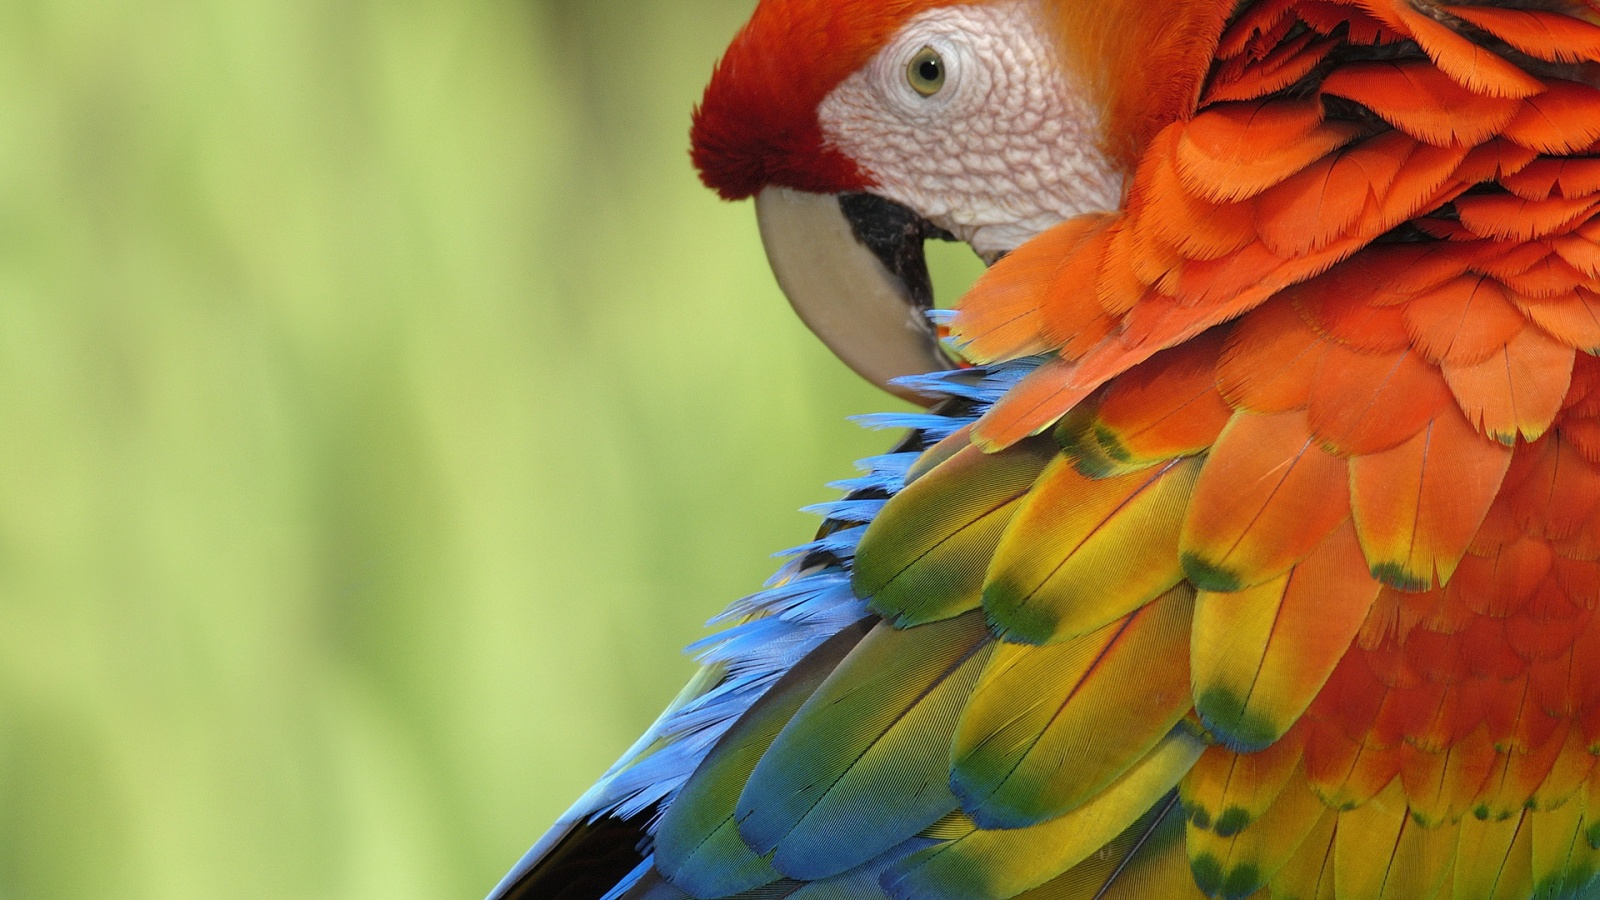 Parrot Wallpaper HD Wallpapers Pictures Images Backgrounds 1600x900 1600x900